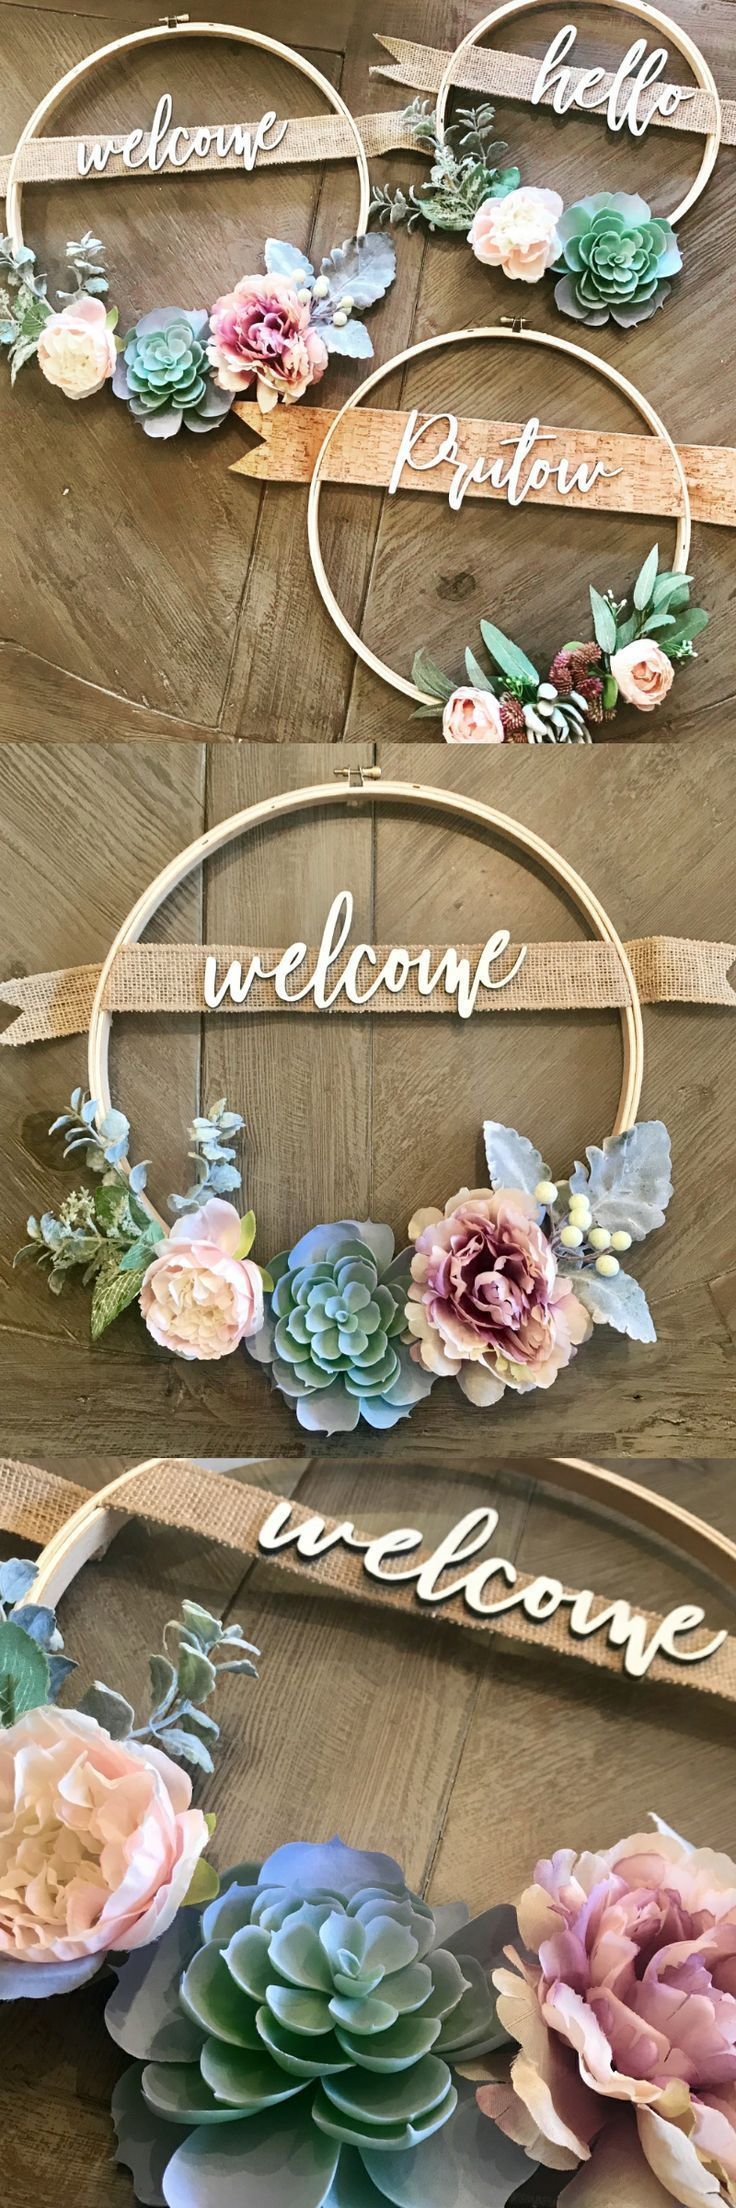 12in Succulent Wreath with Family Name or Custom Greeting - Custom Wreath - 12in Hoop Wreath - Custom Wreath - Farmhouse - Rustic Decor #hochzeitsdeko